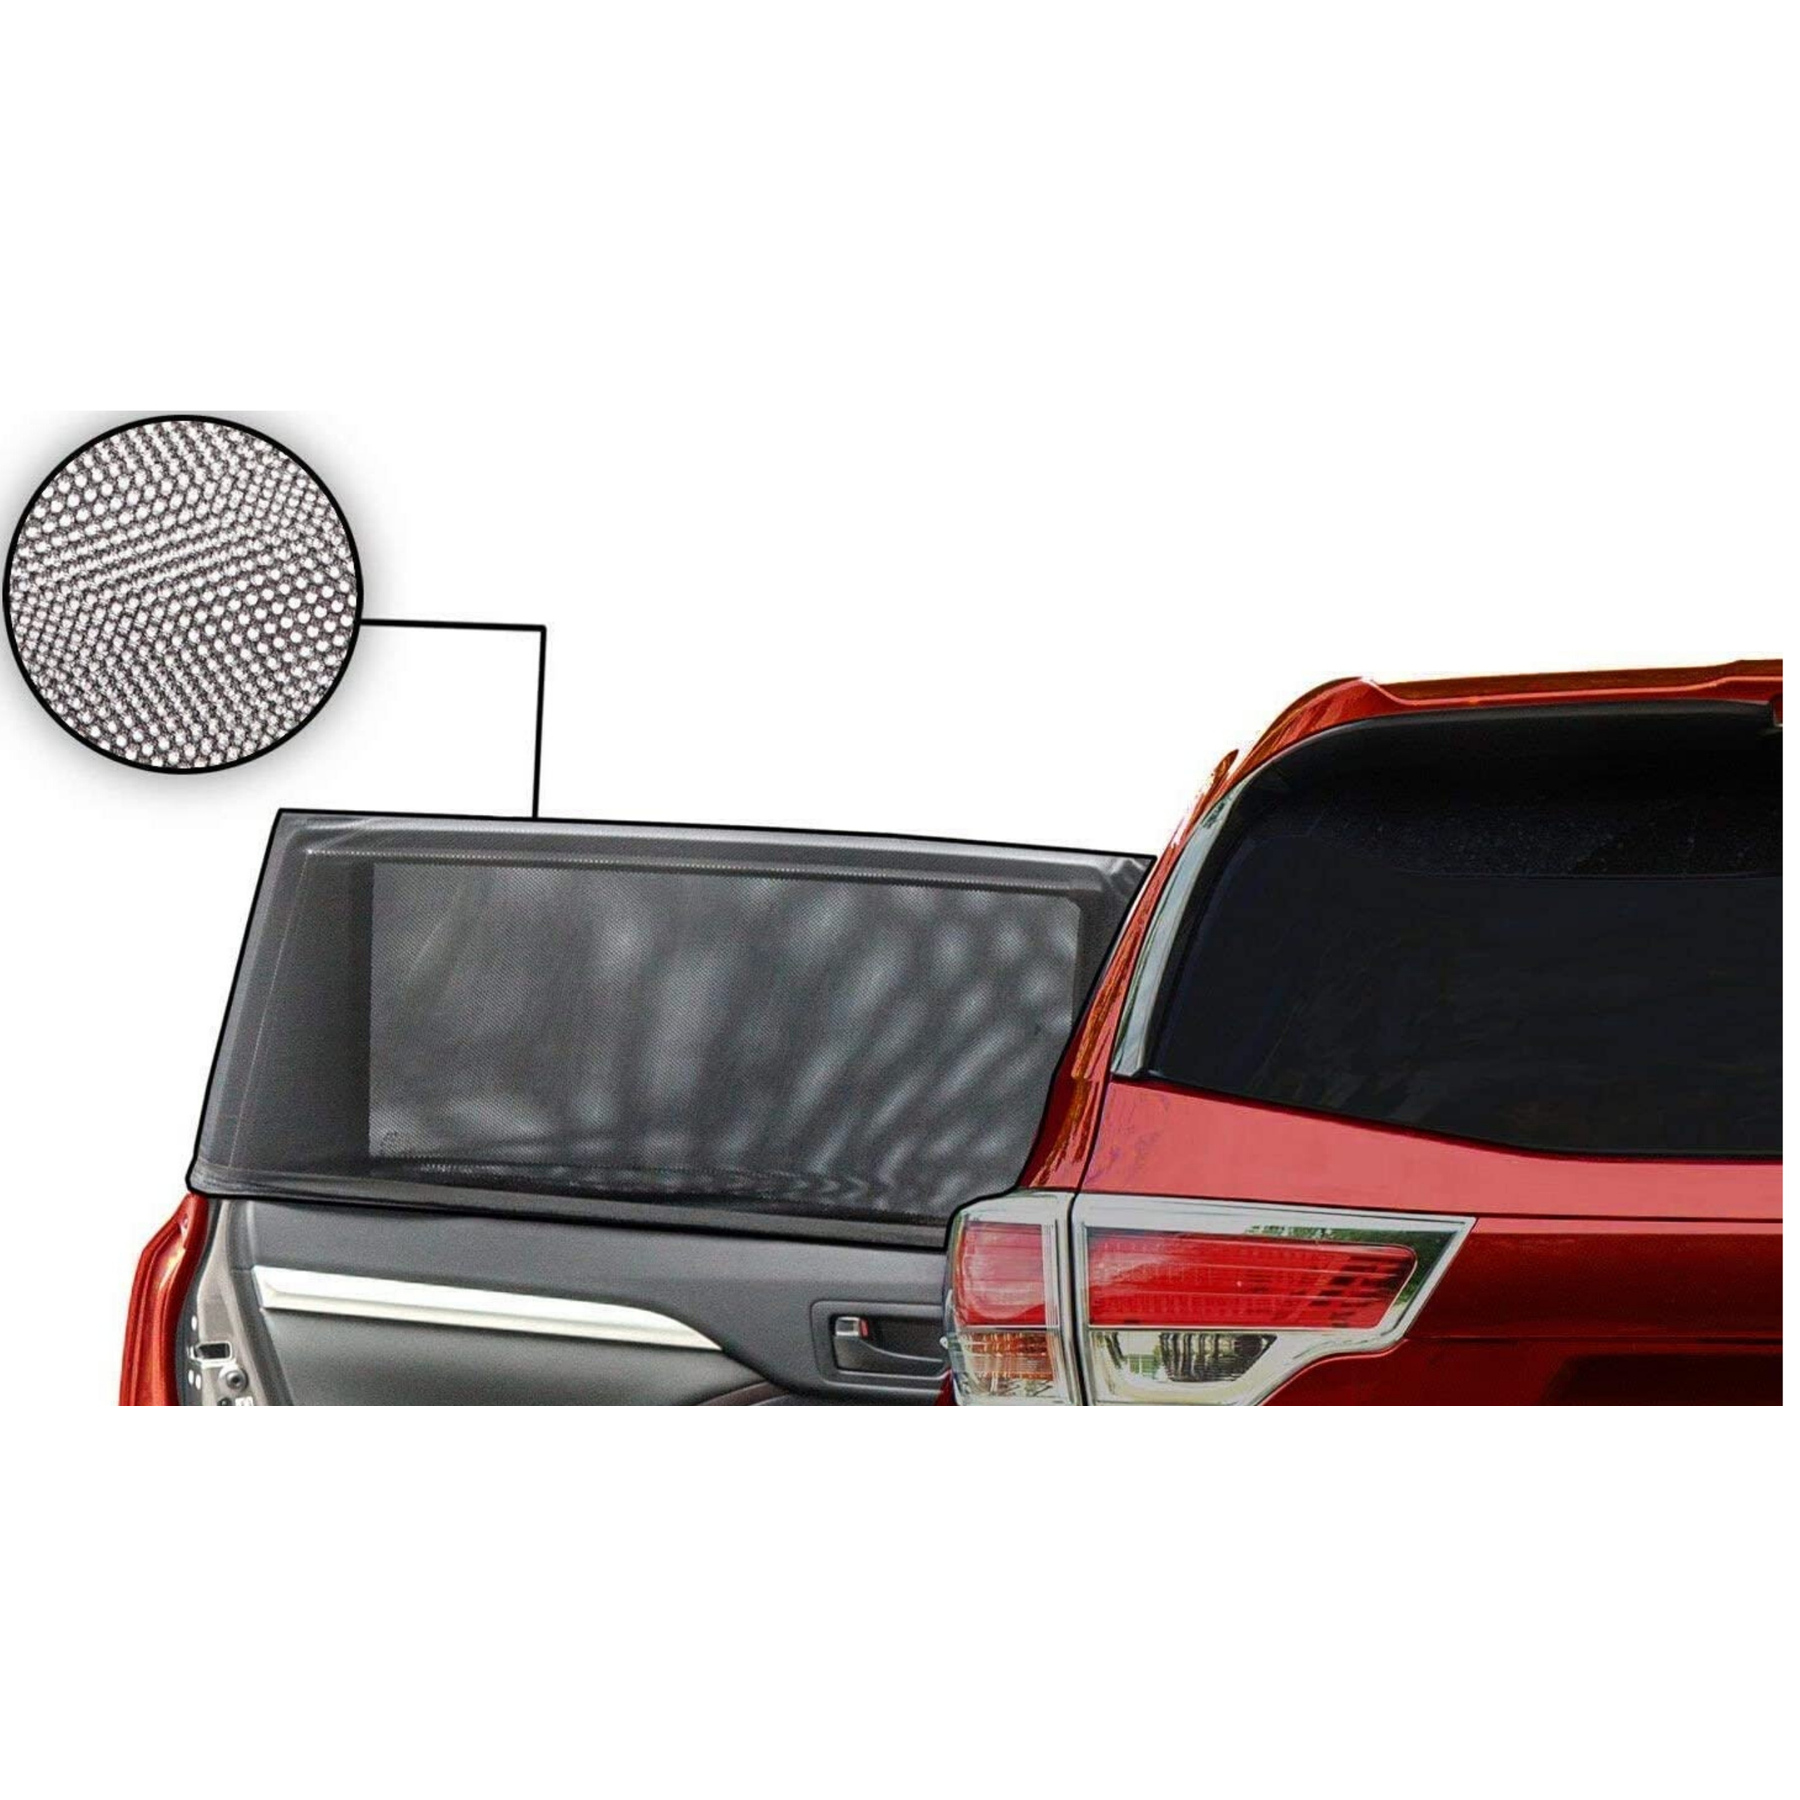 To Sun car, side window Back, To infants, children and Pets, double woven To maximum Protection against The Sun